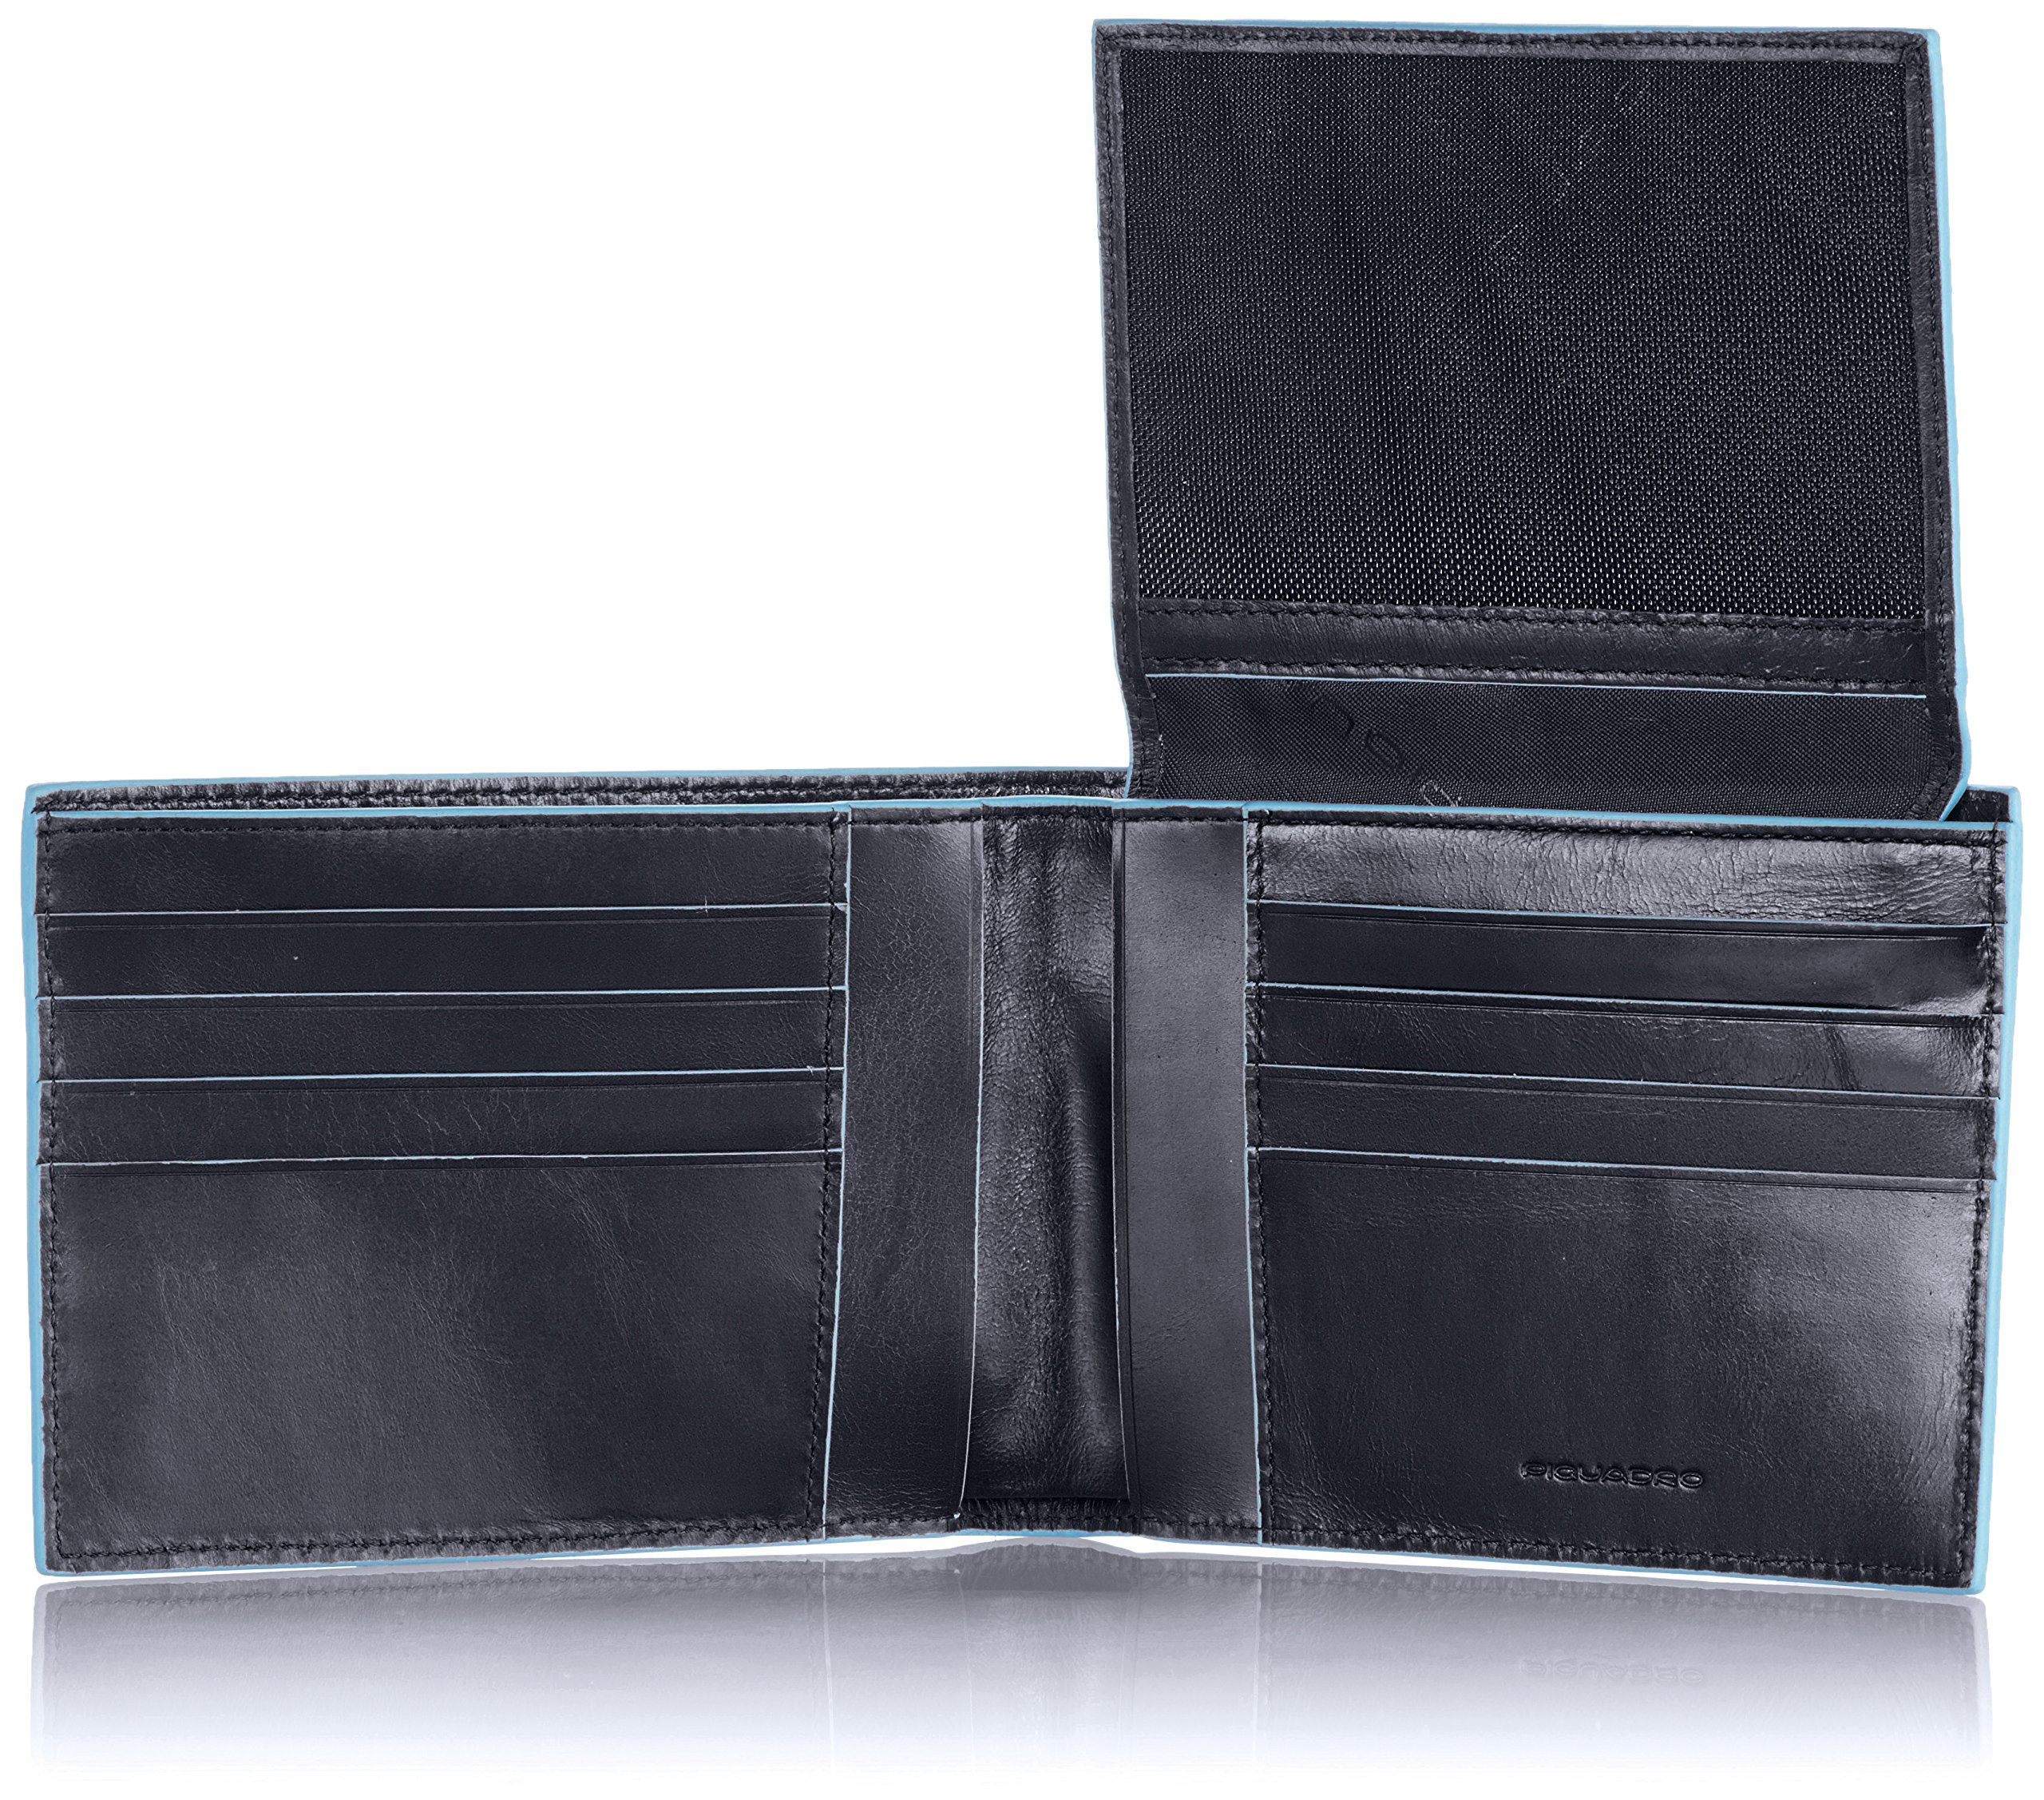 Piquadro Man's Wallet In Leather, Black 1517B2, One Size by Piquadro